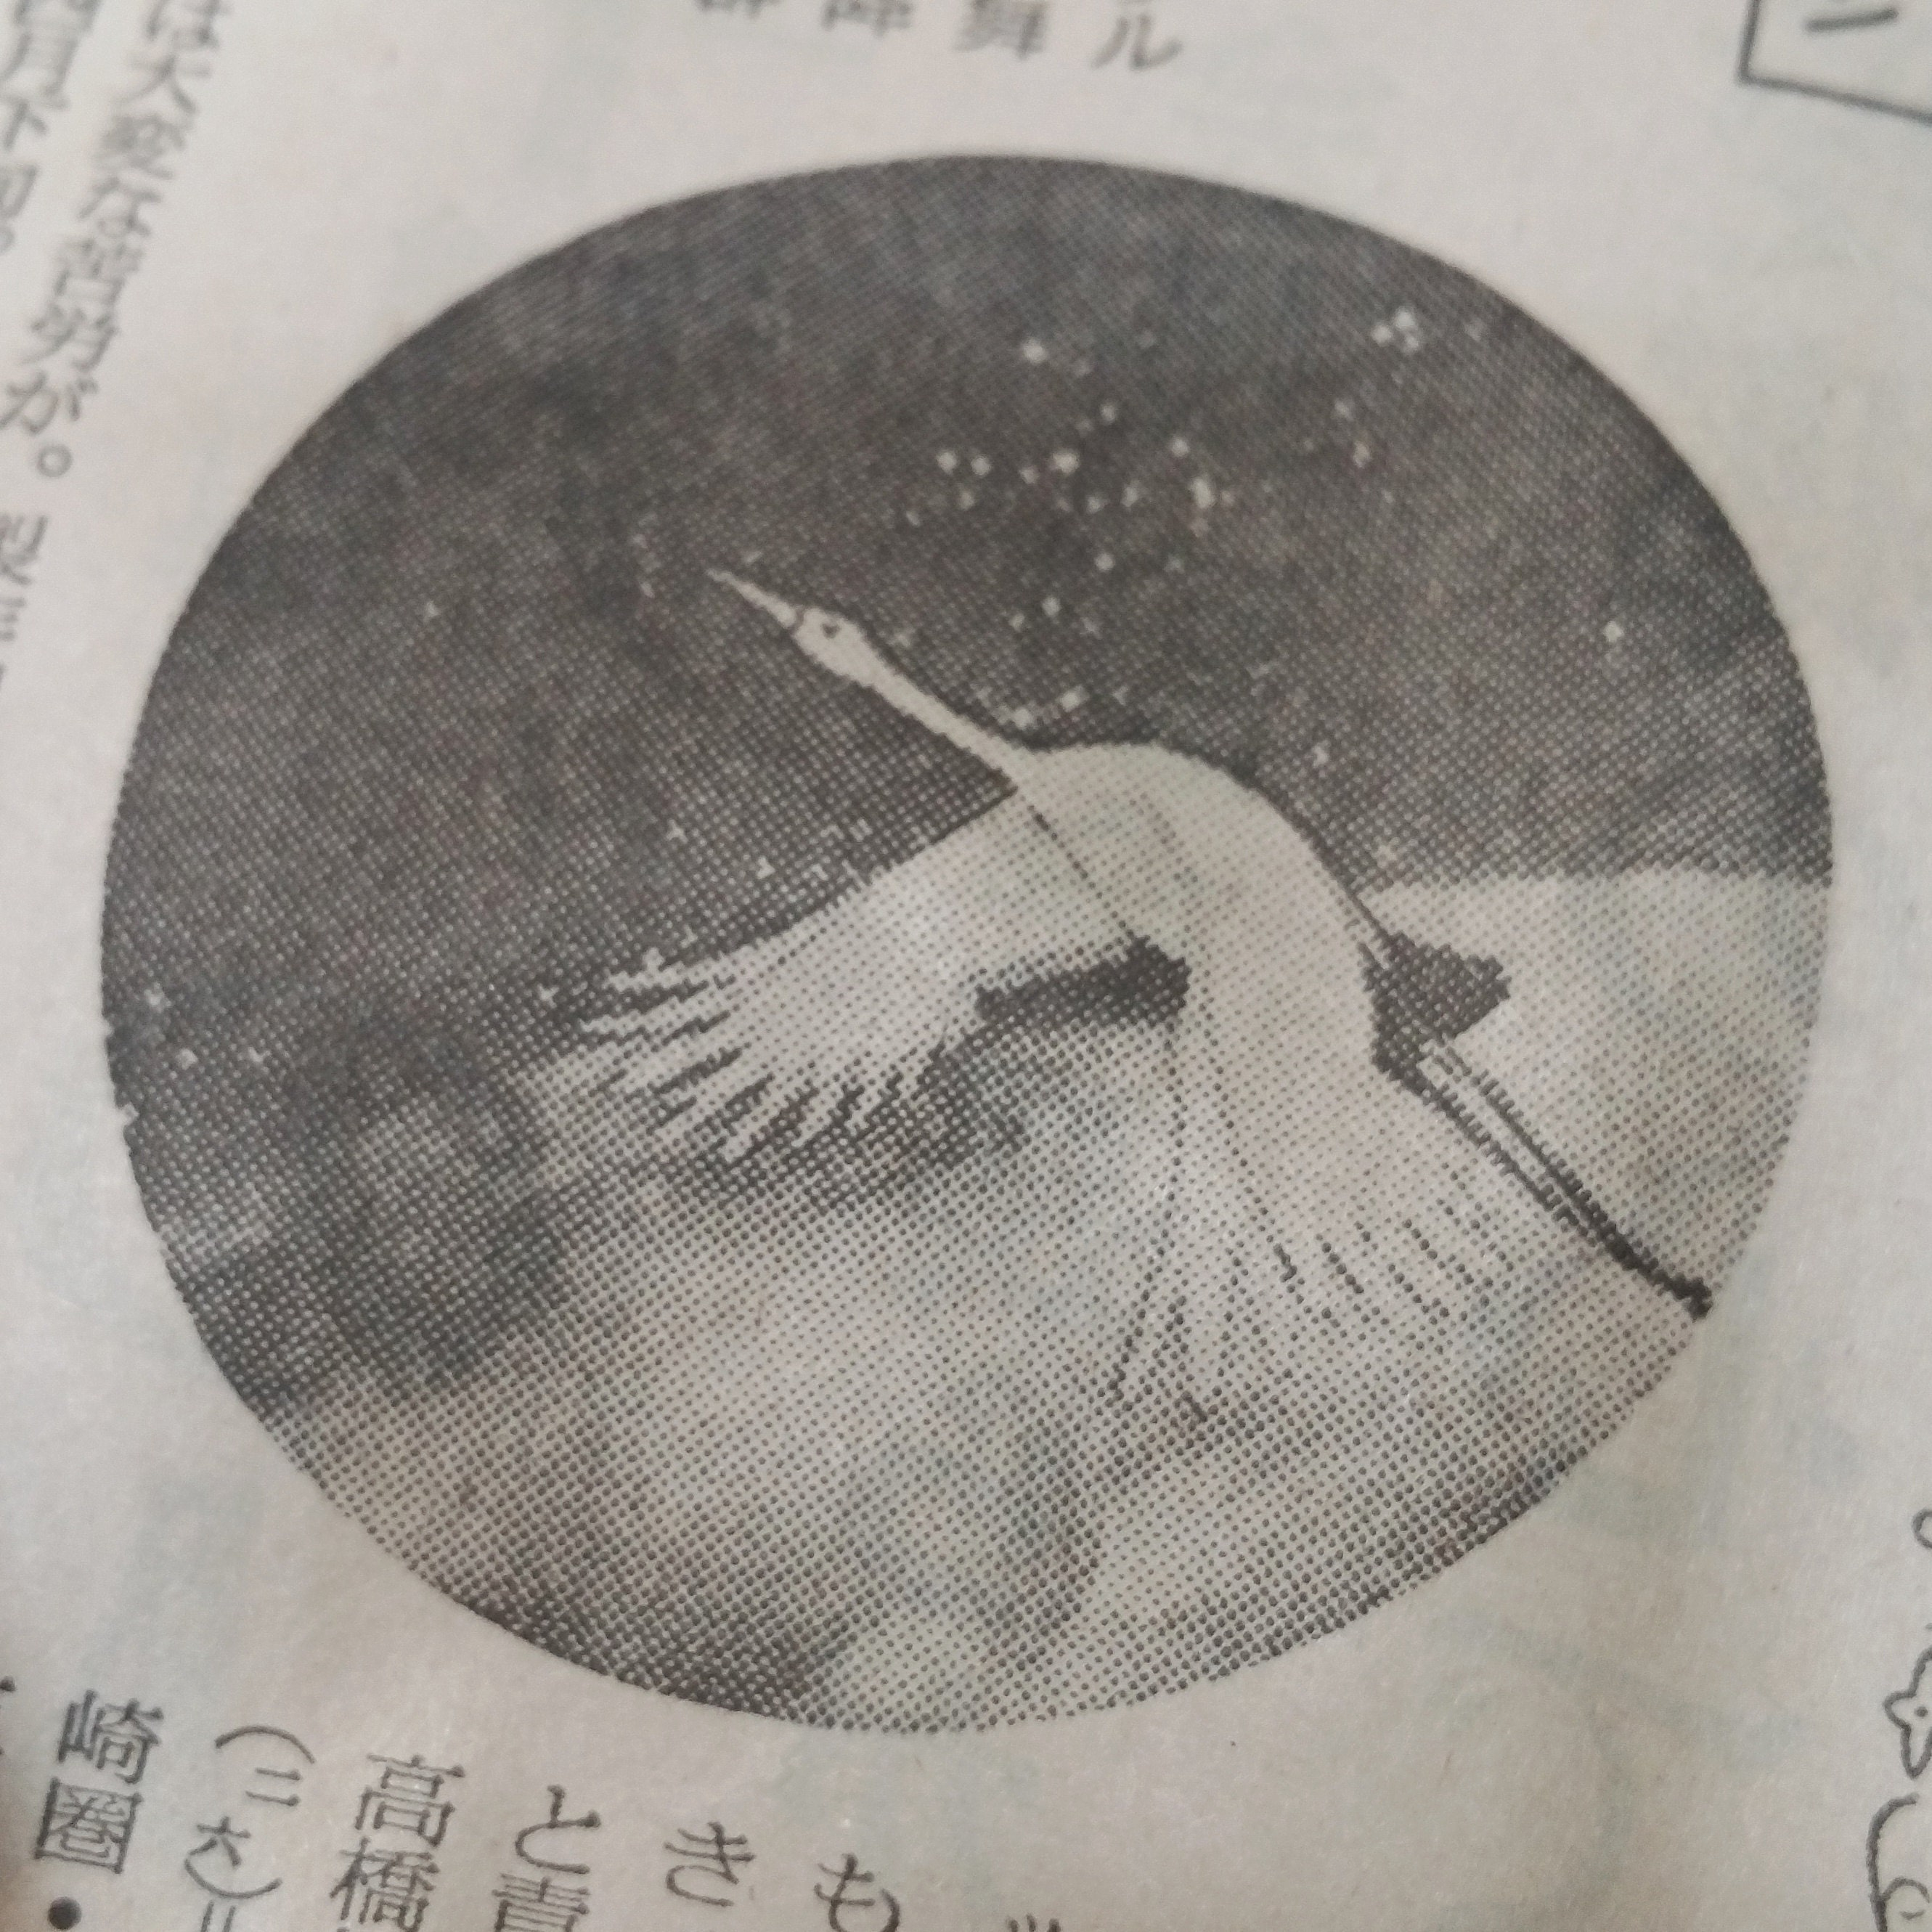 photo found in vintage Japanese newspaper